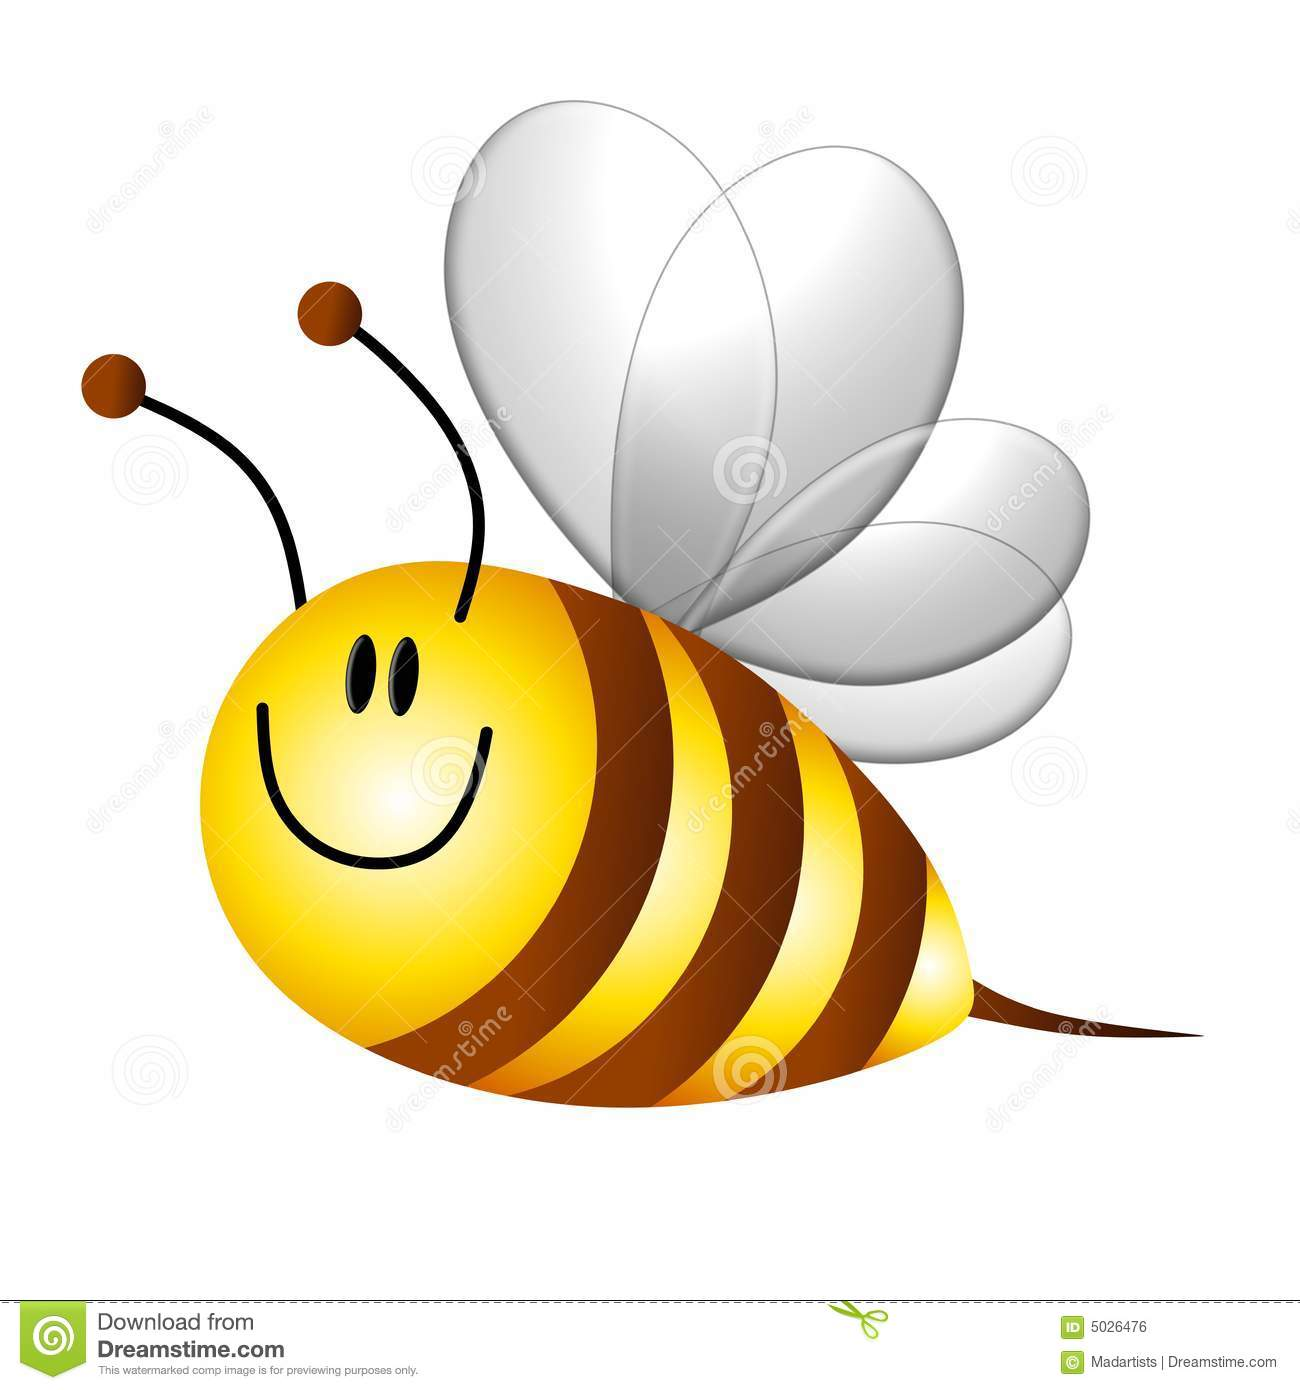 Cartoon Bumble Bee Flying Royalty Free Stock Image - Image ...